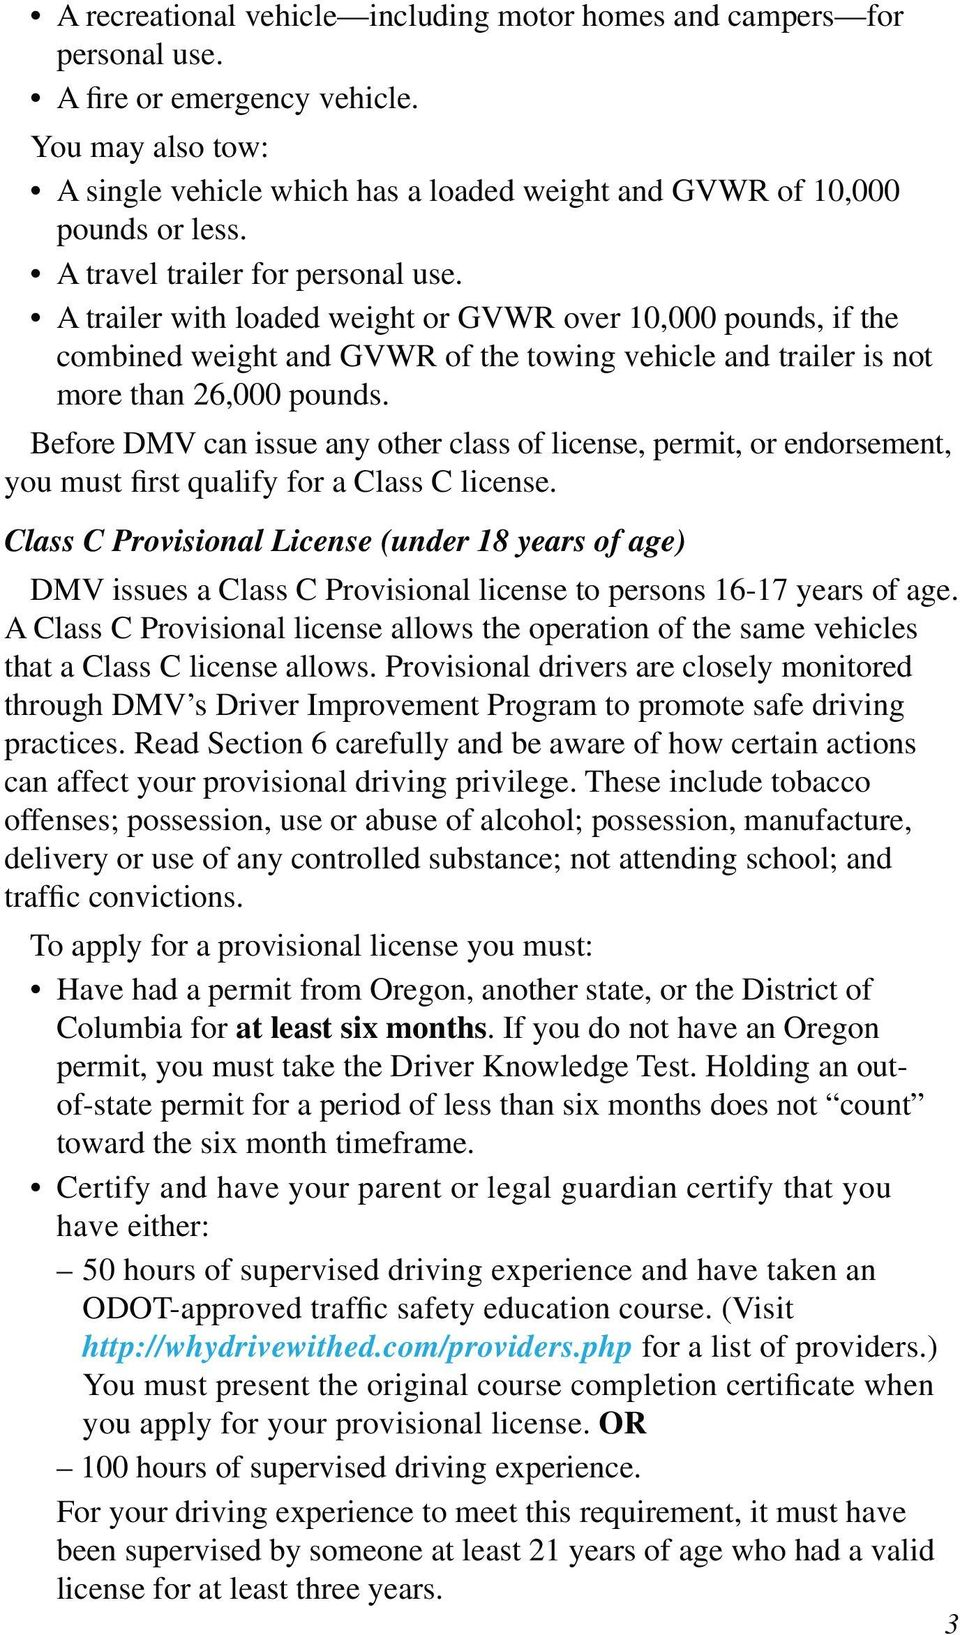 Before DMV can issue any other class of license, permit, or endorsement, you must first qualify for a Class C license.